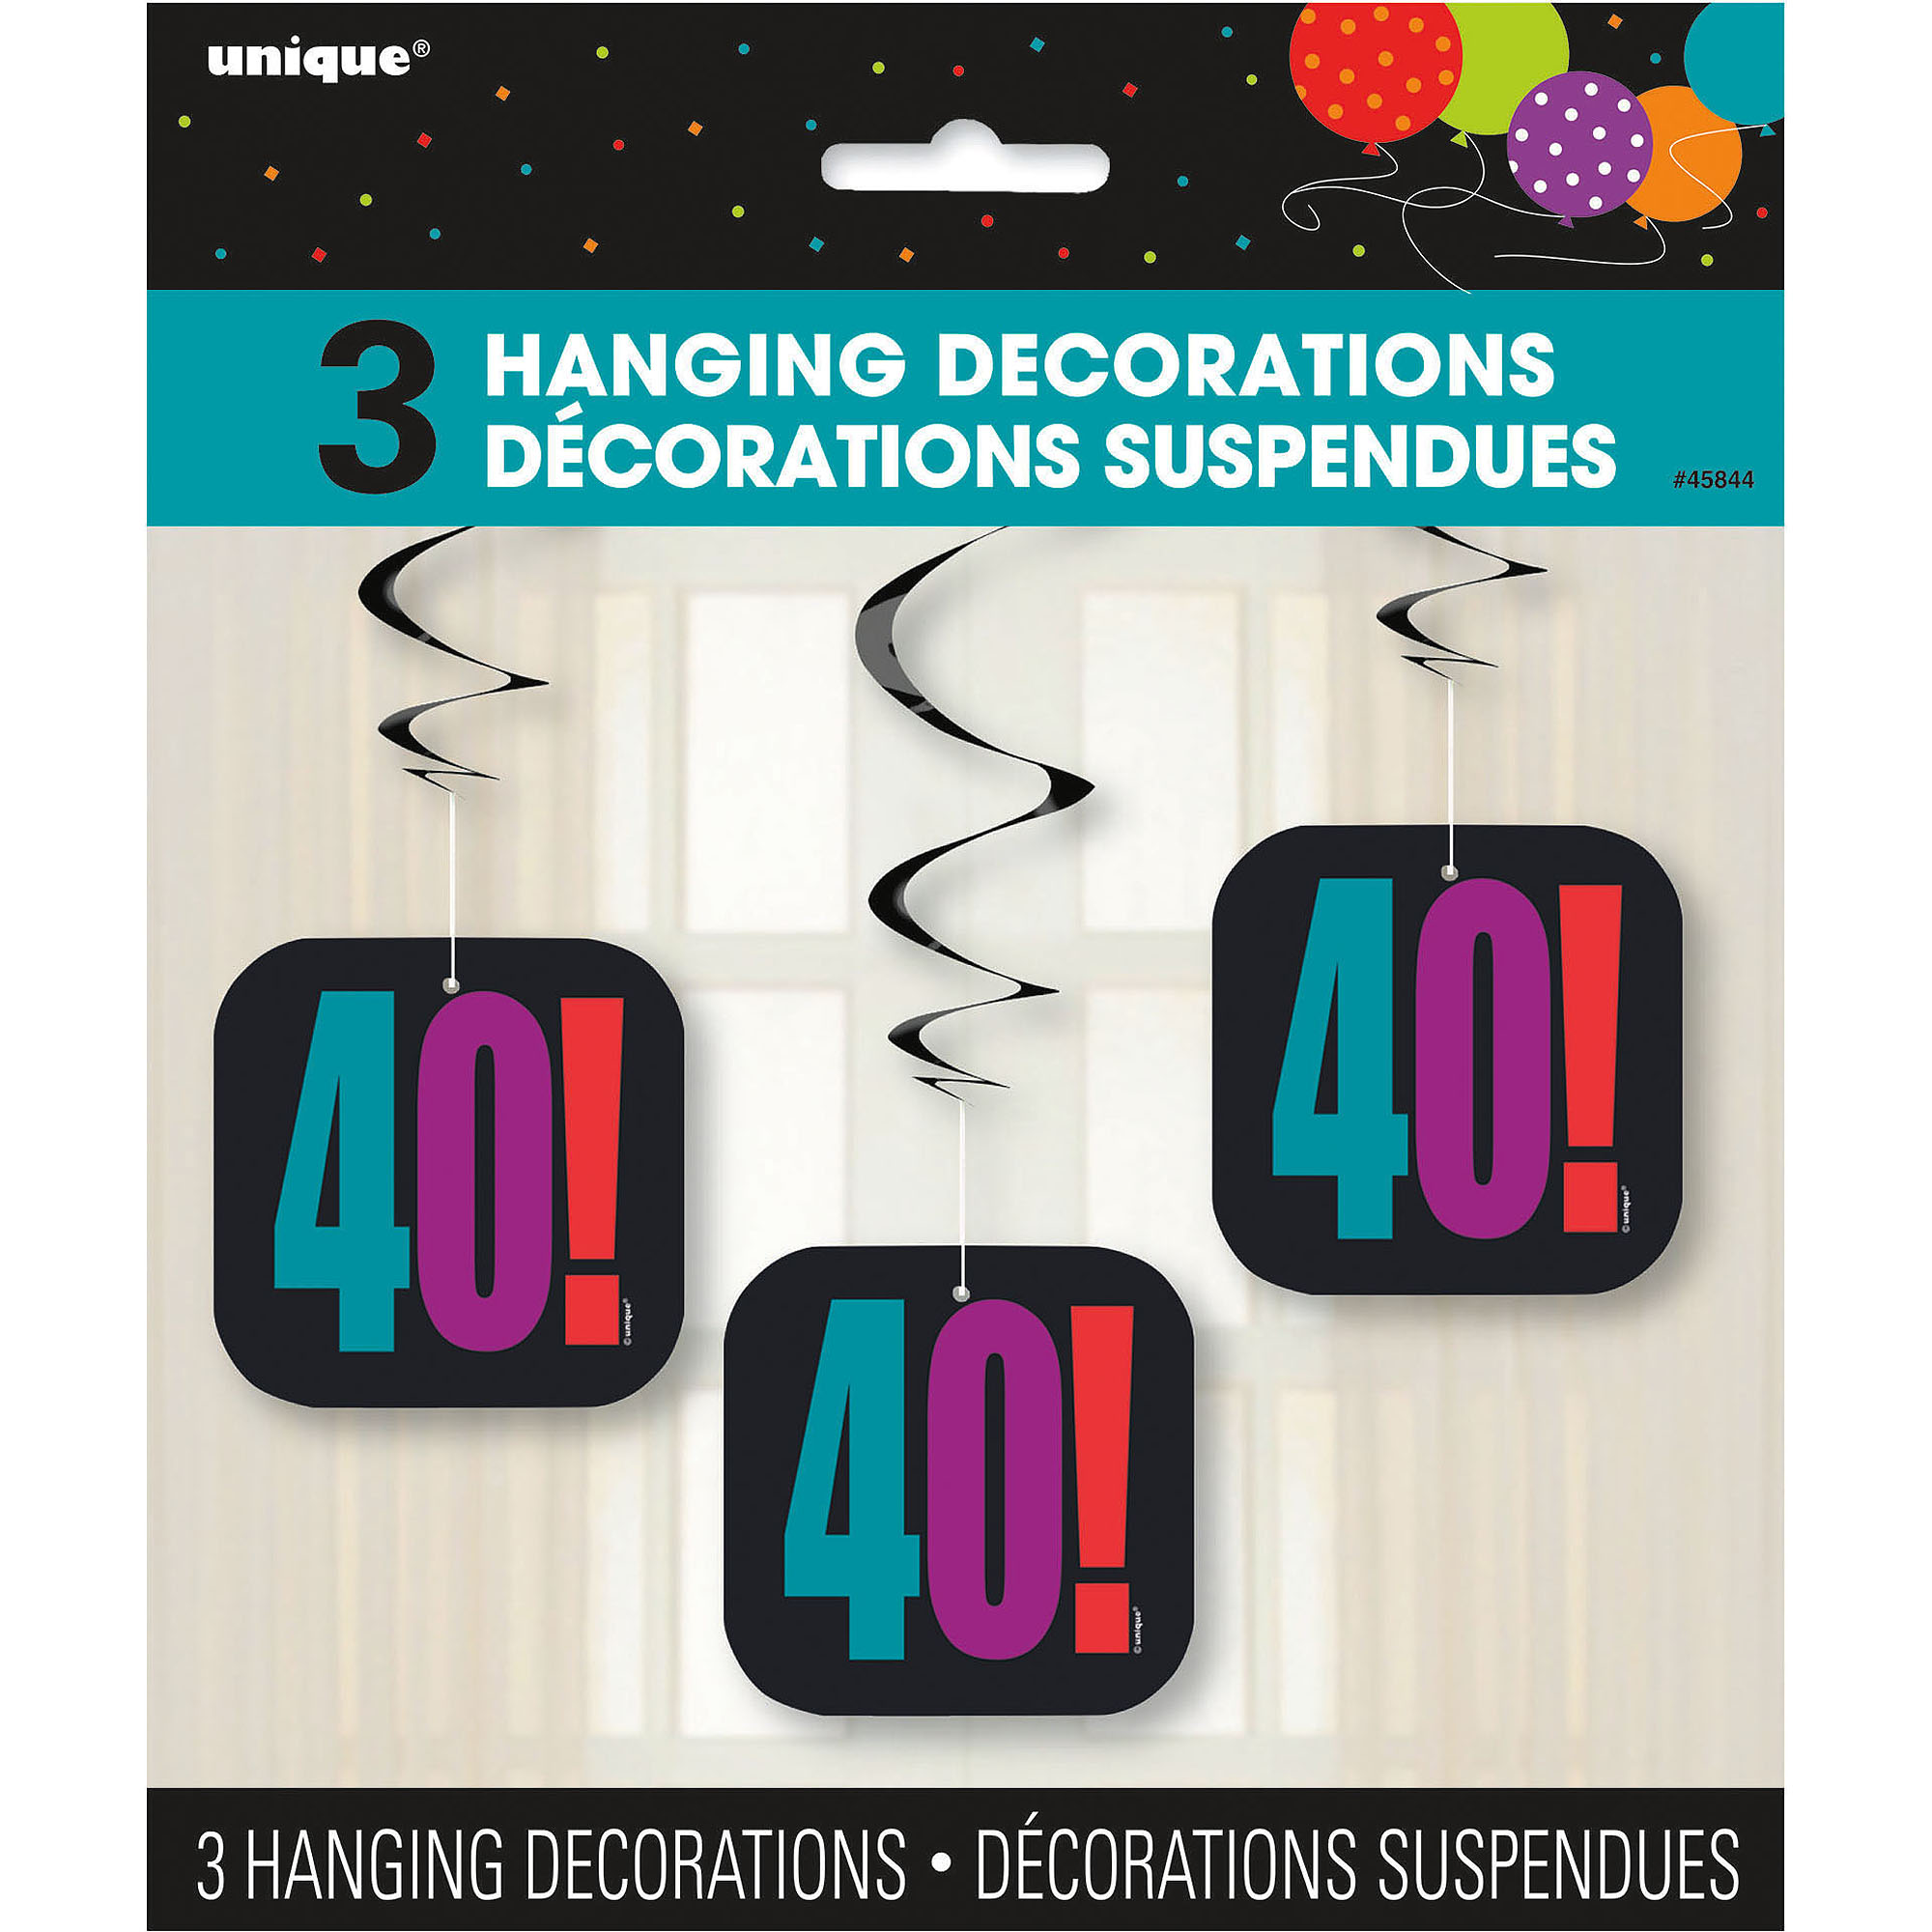 decorations by decor birthday designs party centerpieces bg pin